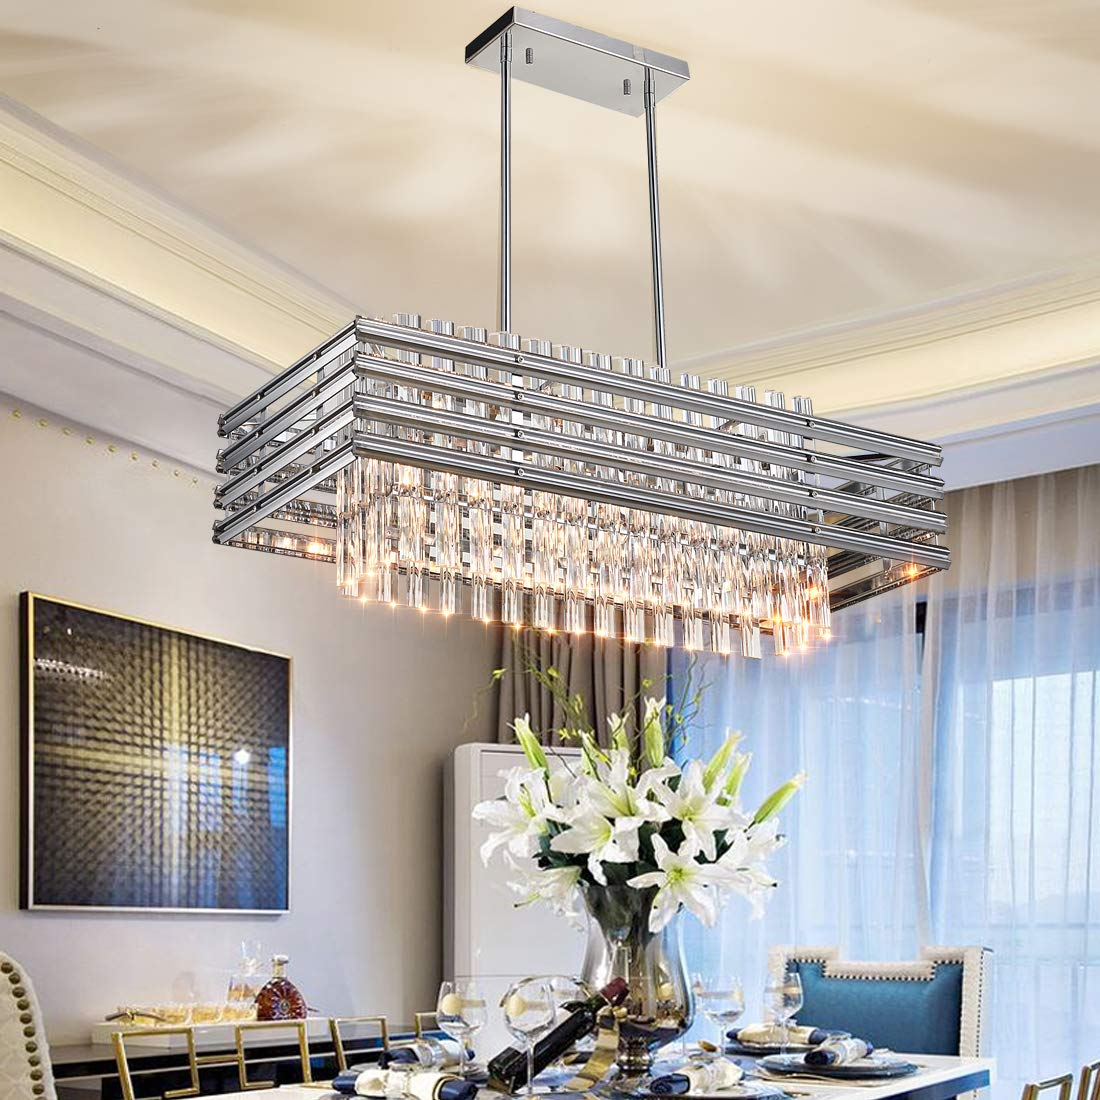 Dining Room Chandelier,Modern Rectangle Pendant Light,Crystal Chandelier,L31.5'' x W13.8'' x H48.5'',6 Light, Adjustable Height,Polished Chrome,UL Listed by TZOE